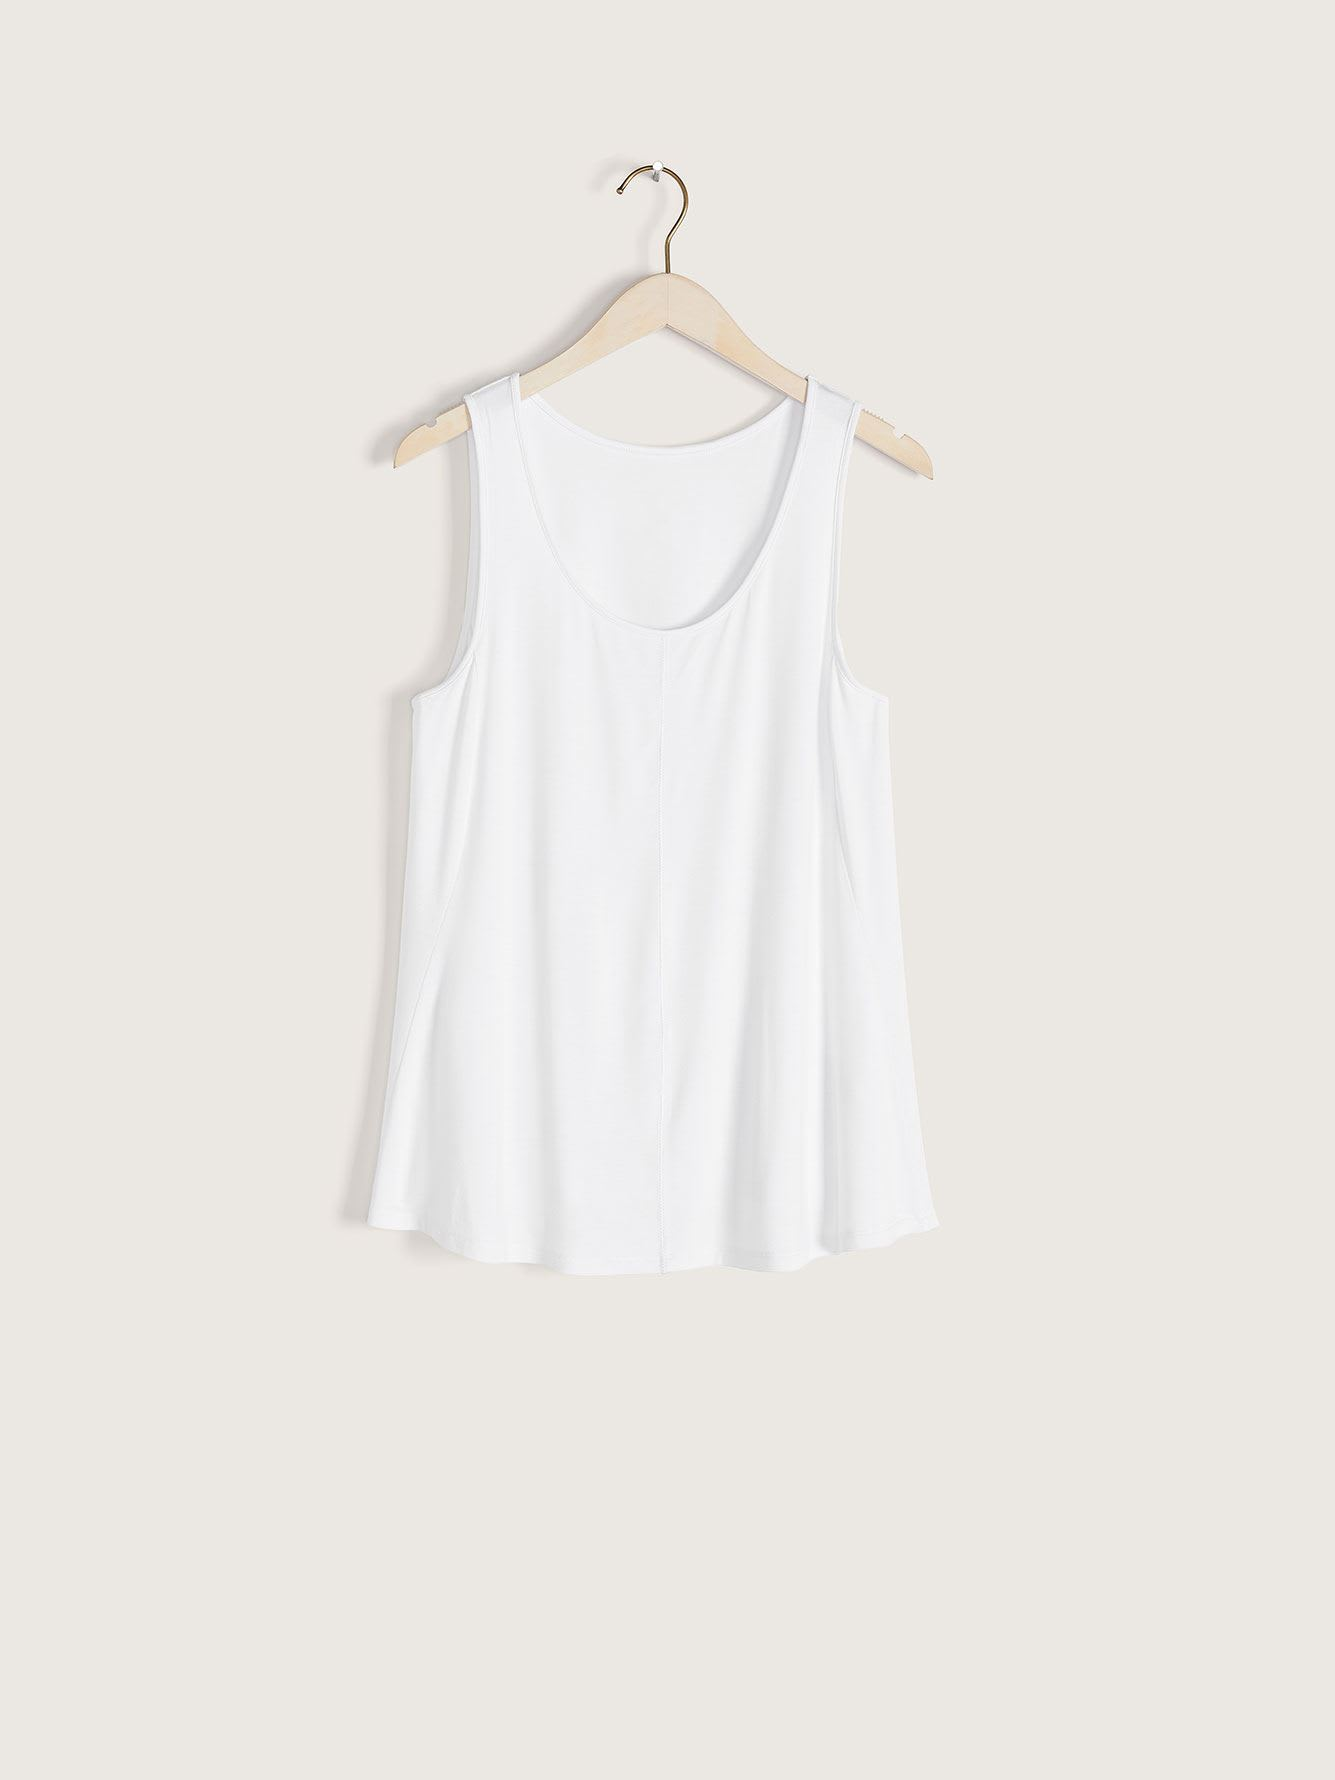 White Scoop-Neck Swing Tank Top - Addition Elle